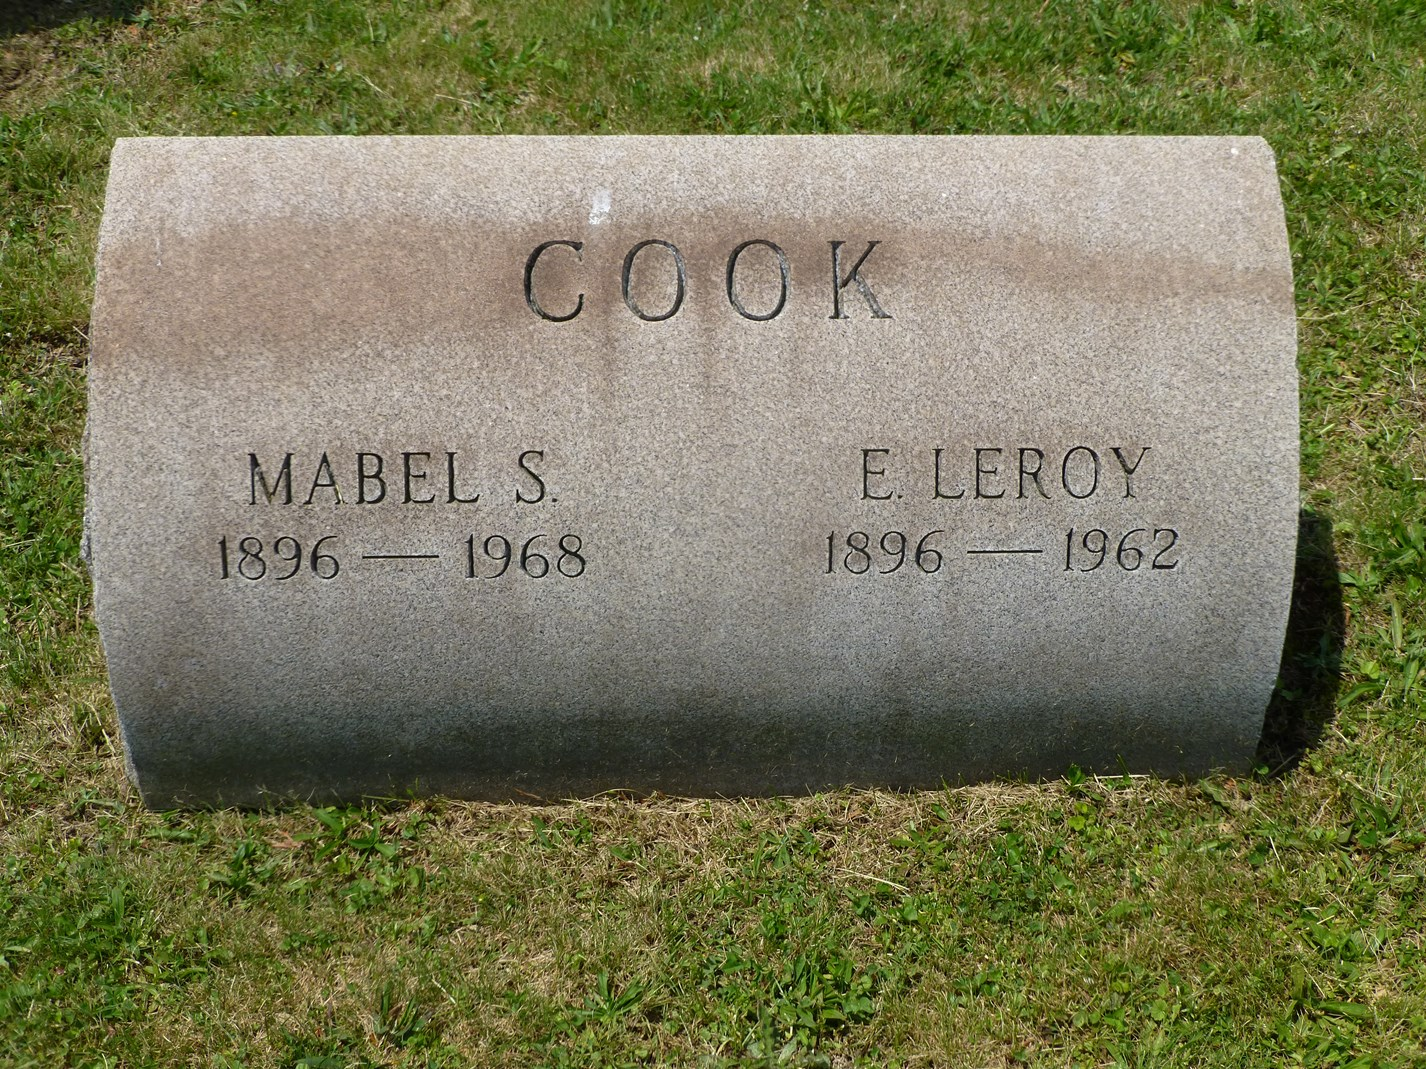 Edward Leroy Cook